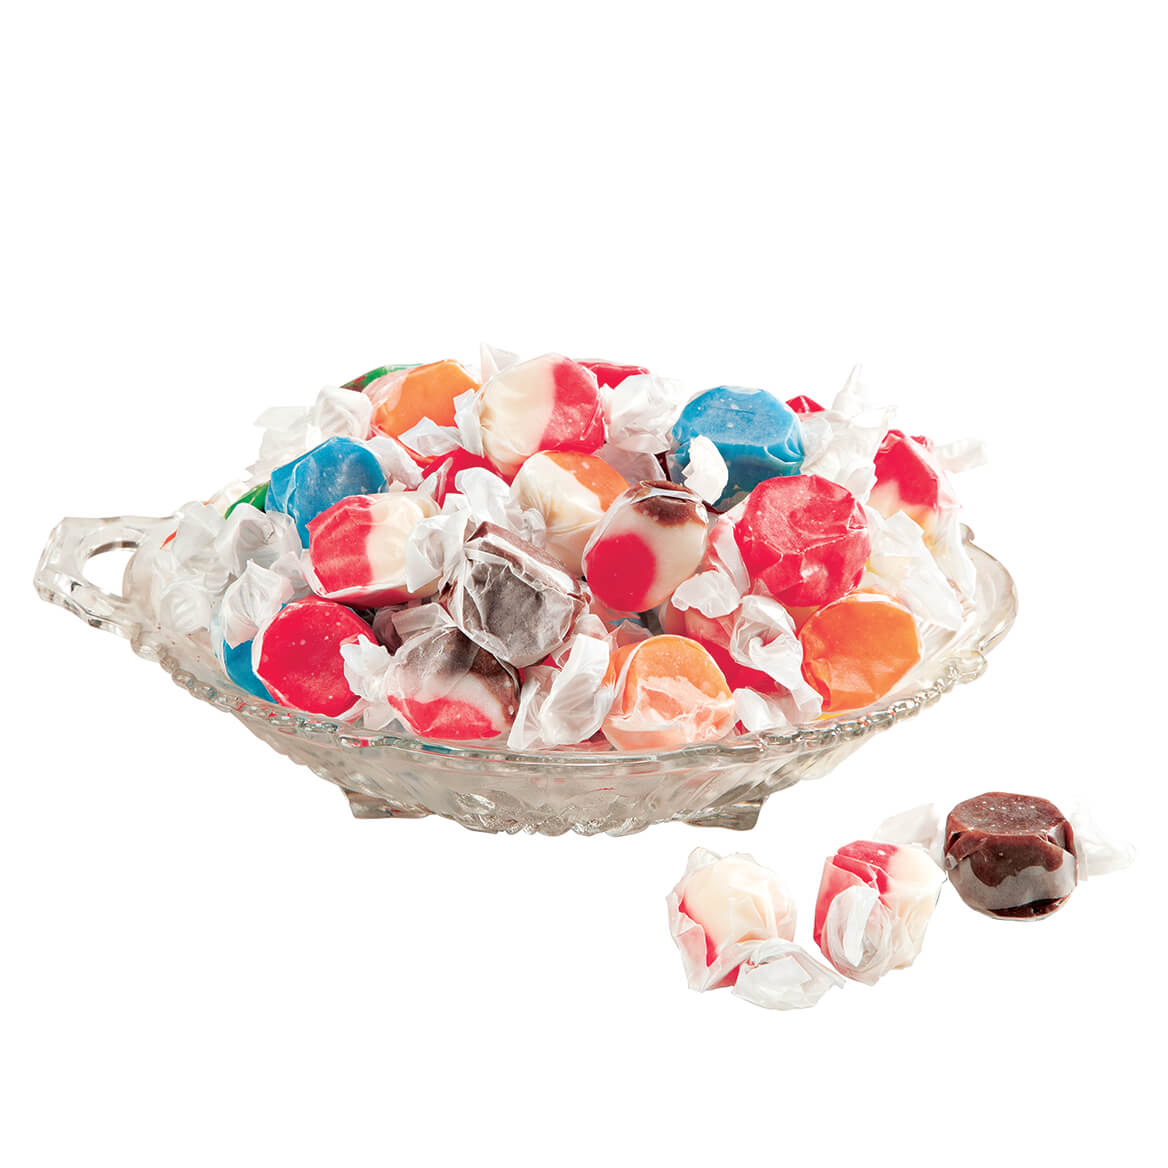 Taffy Town® Taffy Lite™ Sugar Free Taffy, 5 oz.-363211